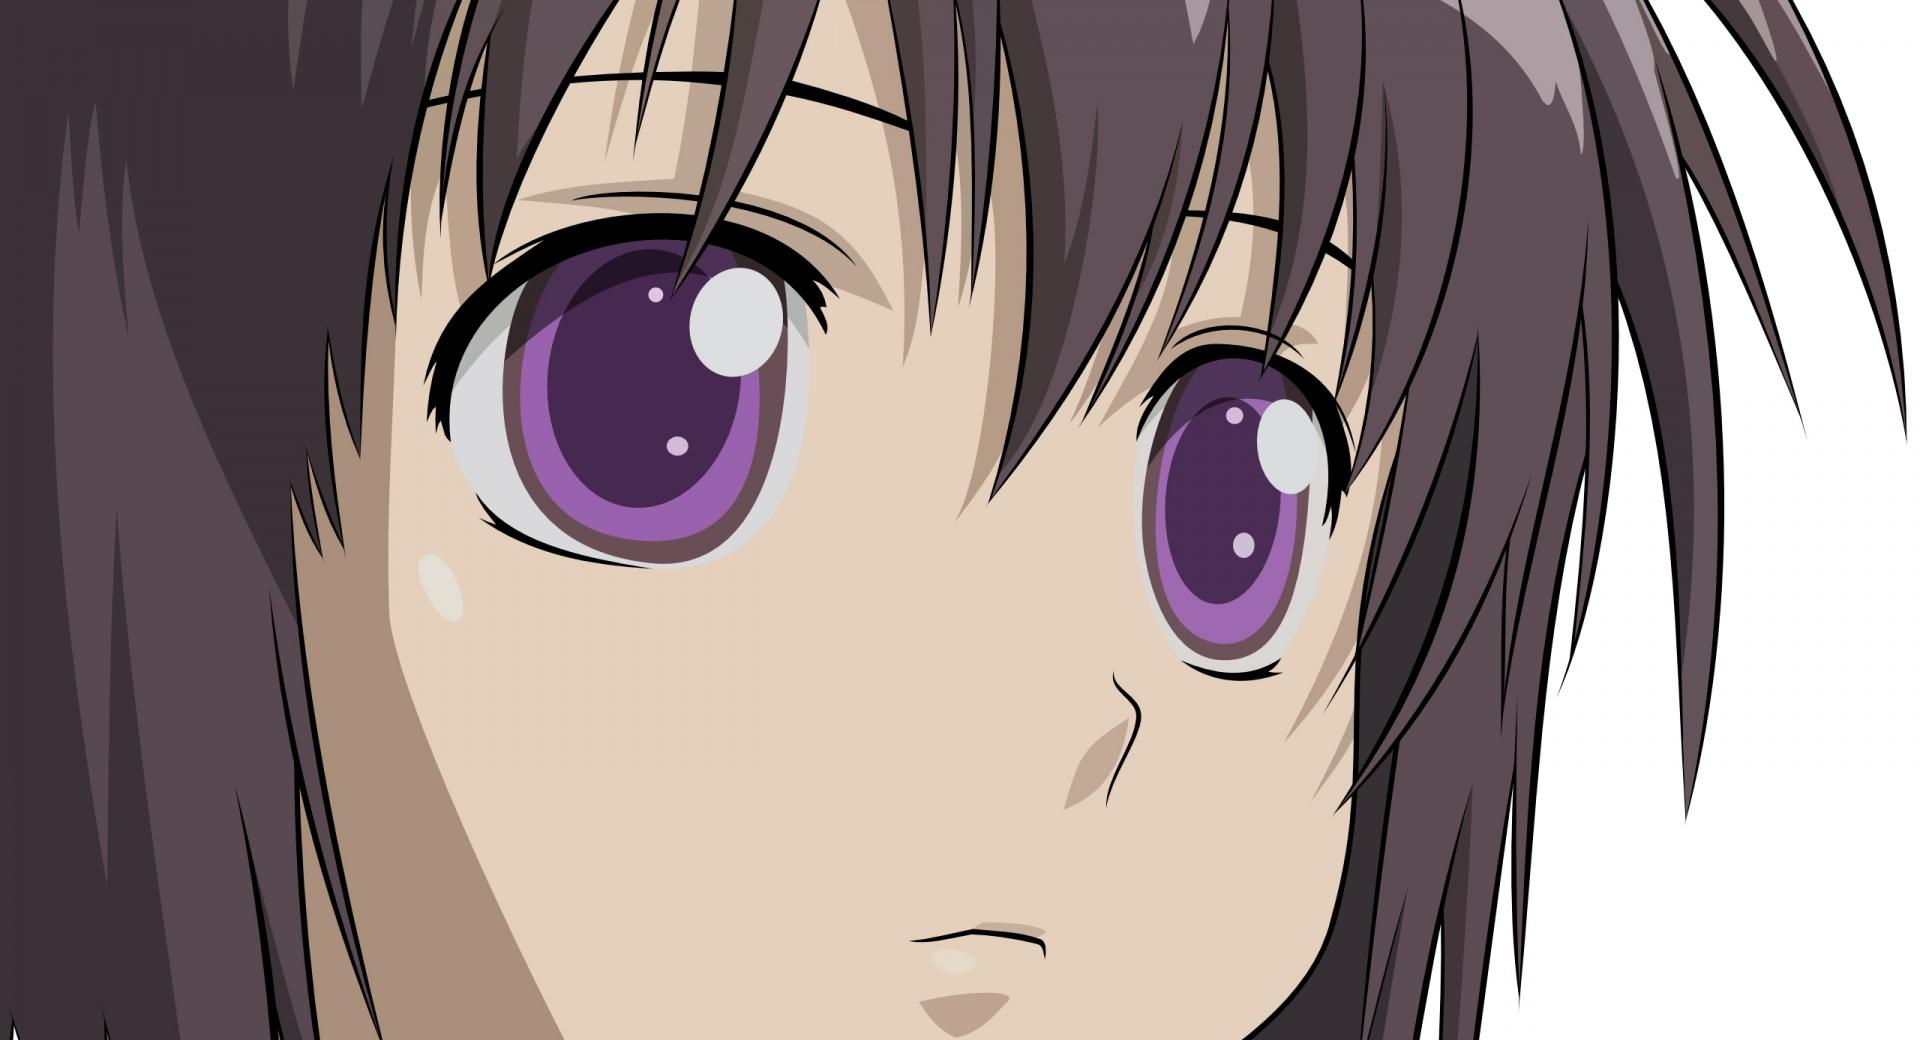 Girl With Purple Eyes Anime wallpapers HD quality